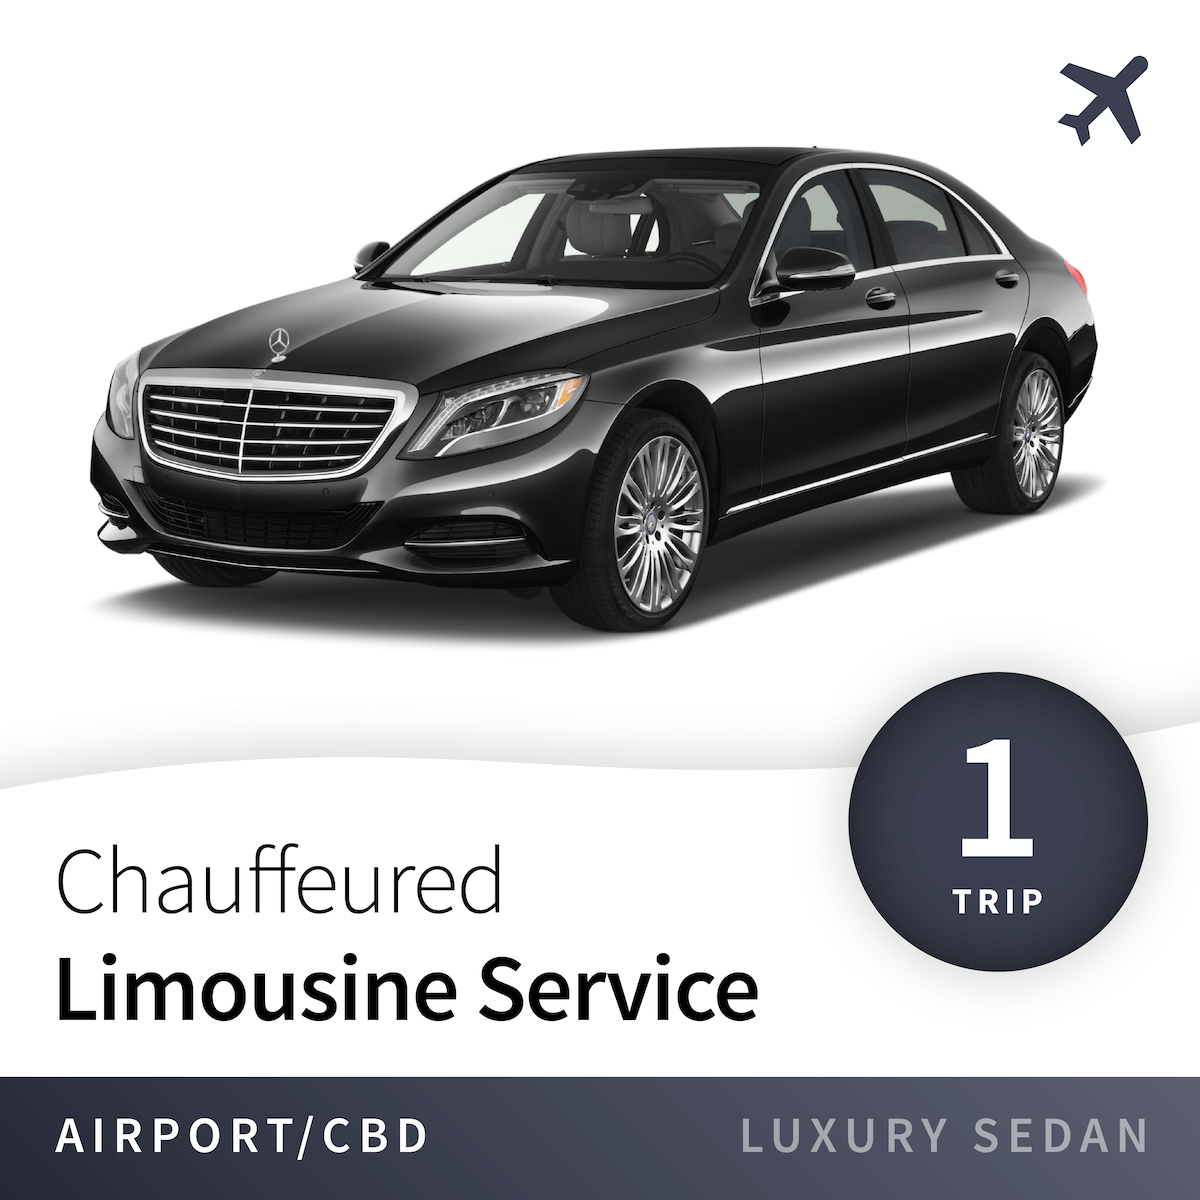 Chauffeured Limousine Service - Airport - Luxury Sedan (1 Trip) 1